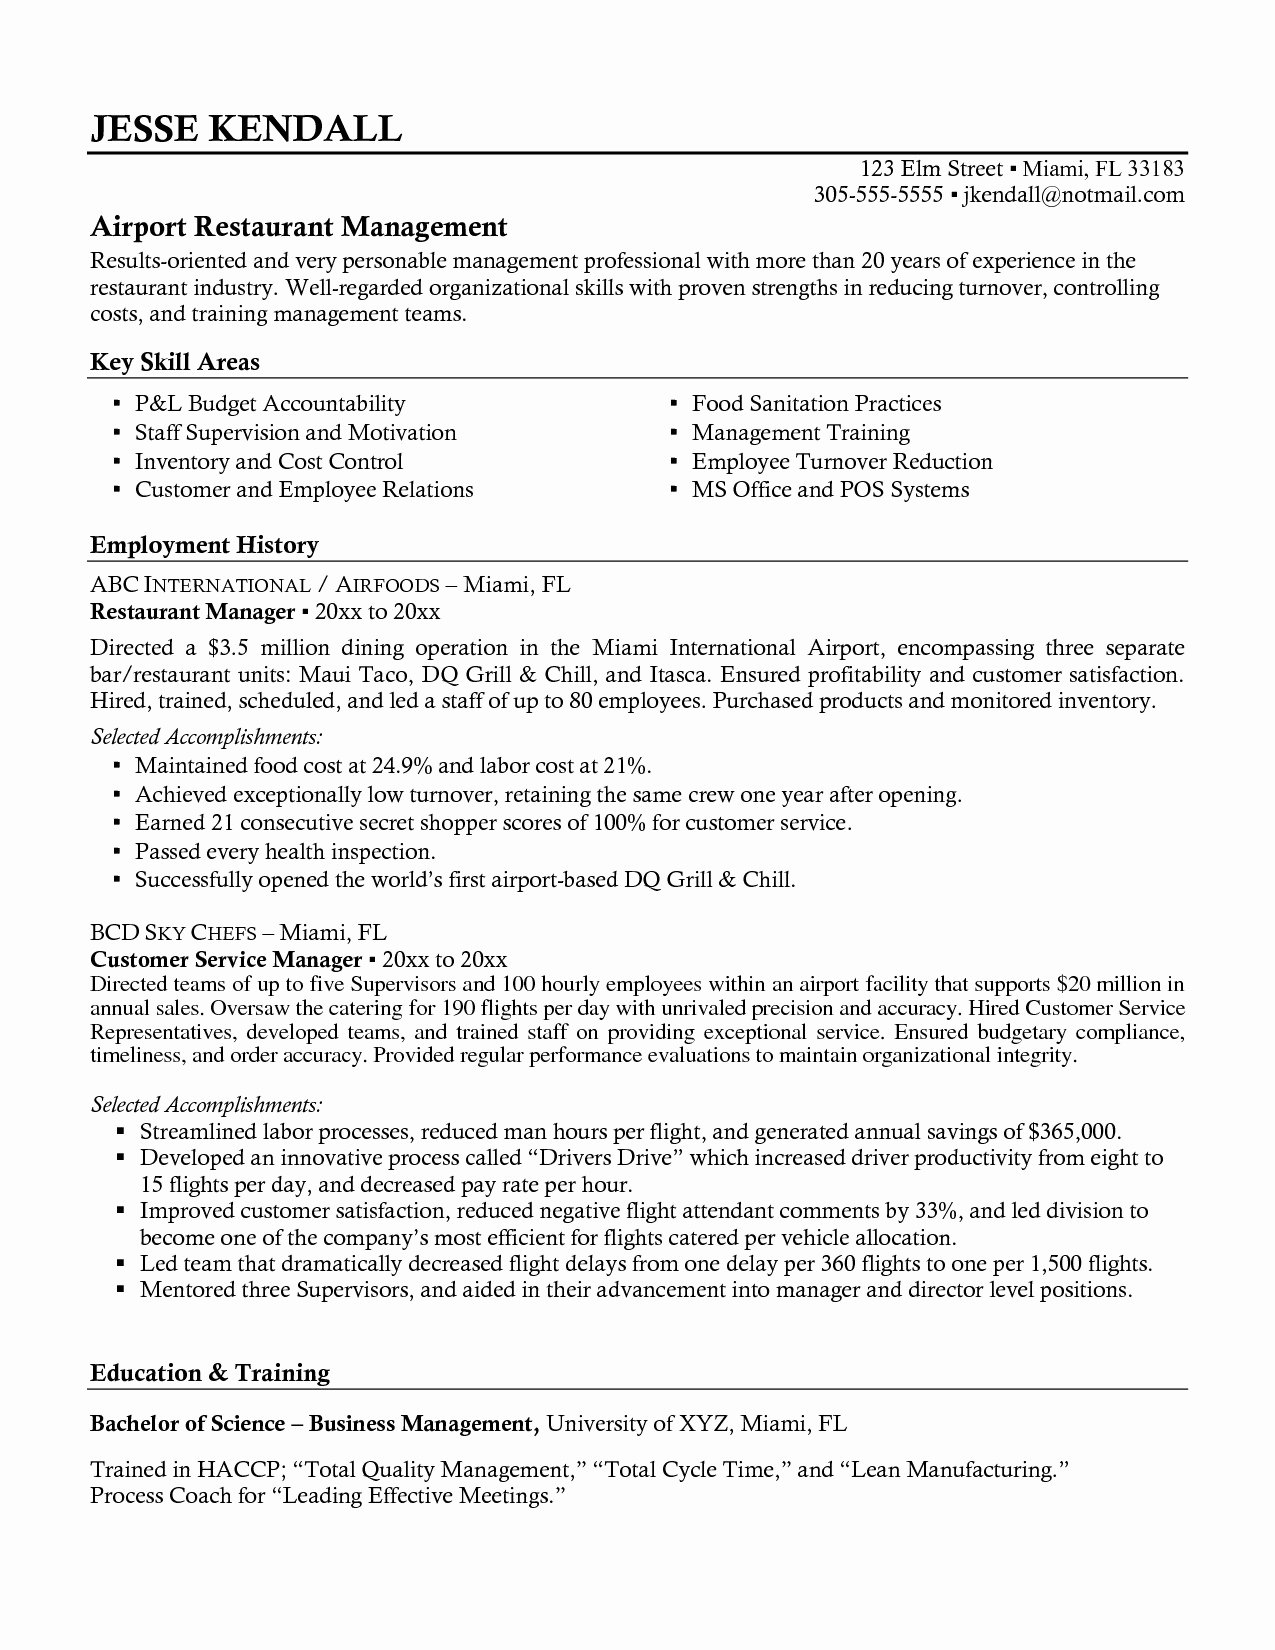 Bar Manager Job Description Resume Best Of Restaurant General Manager Resume Hirnsturm